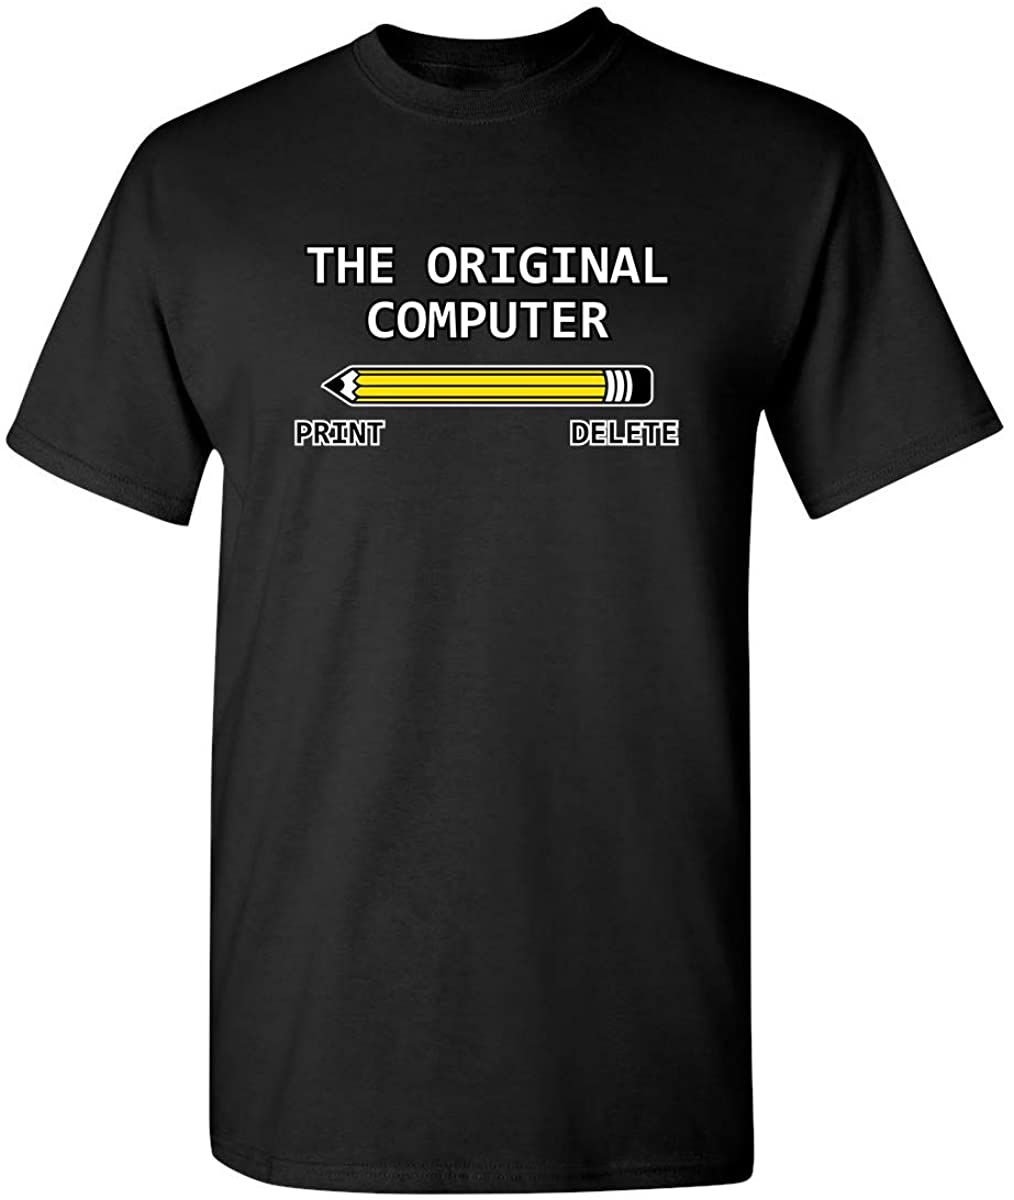 The Original Computer Adult Humor Graphic Novelty Sarcastic Funny T Shirt